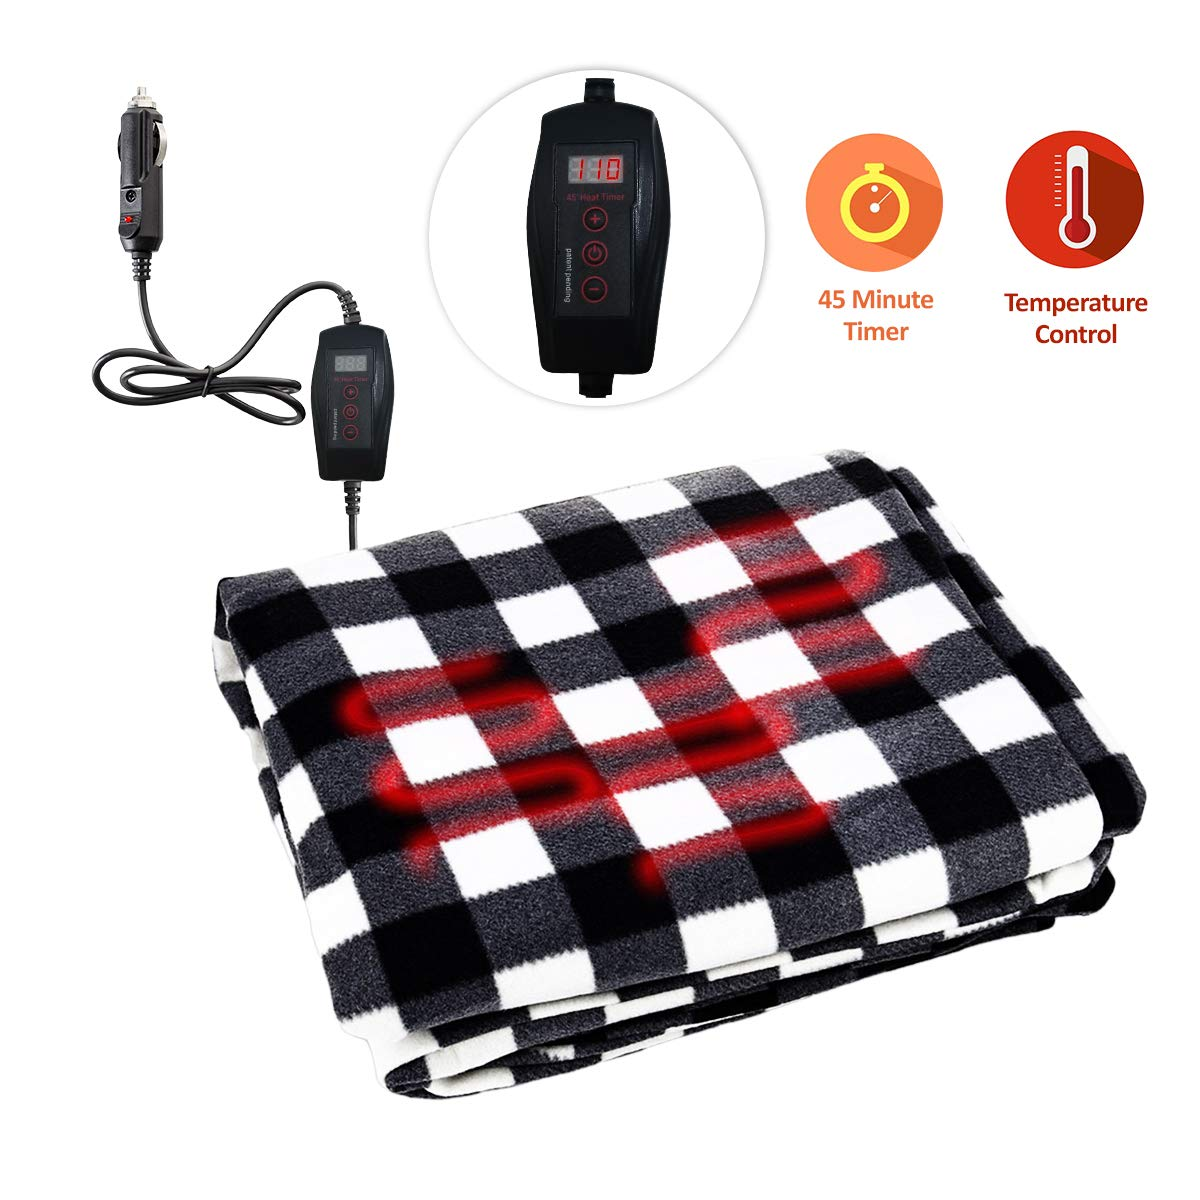 Zone Tech Car Heated Travel Blanket - Black and White Premium Quality 12V Automotive Comfortable Heating Car Seat Blanket Great for Winter by ZONETECH